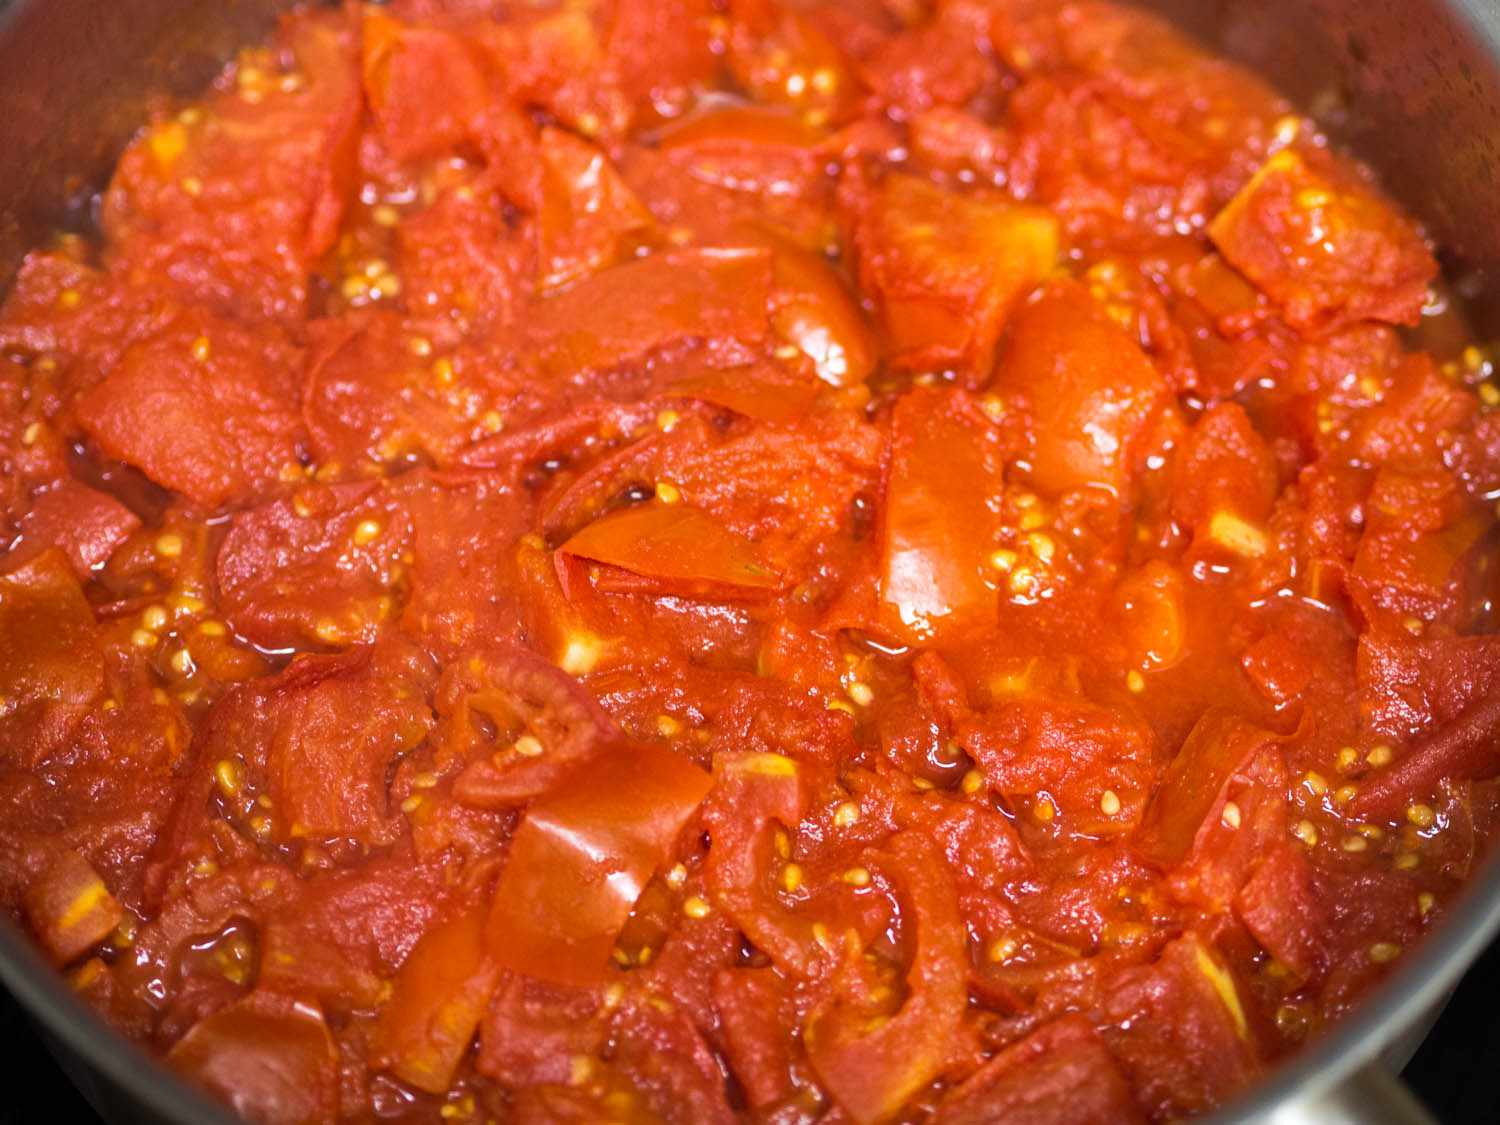 A pot of chopped up Amish paste tomatoes.